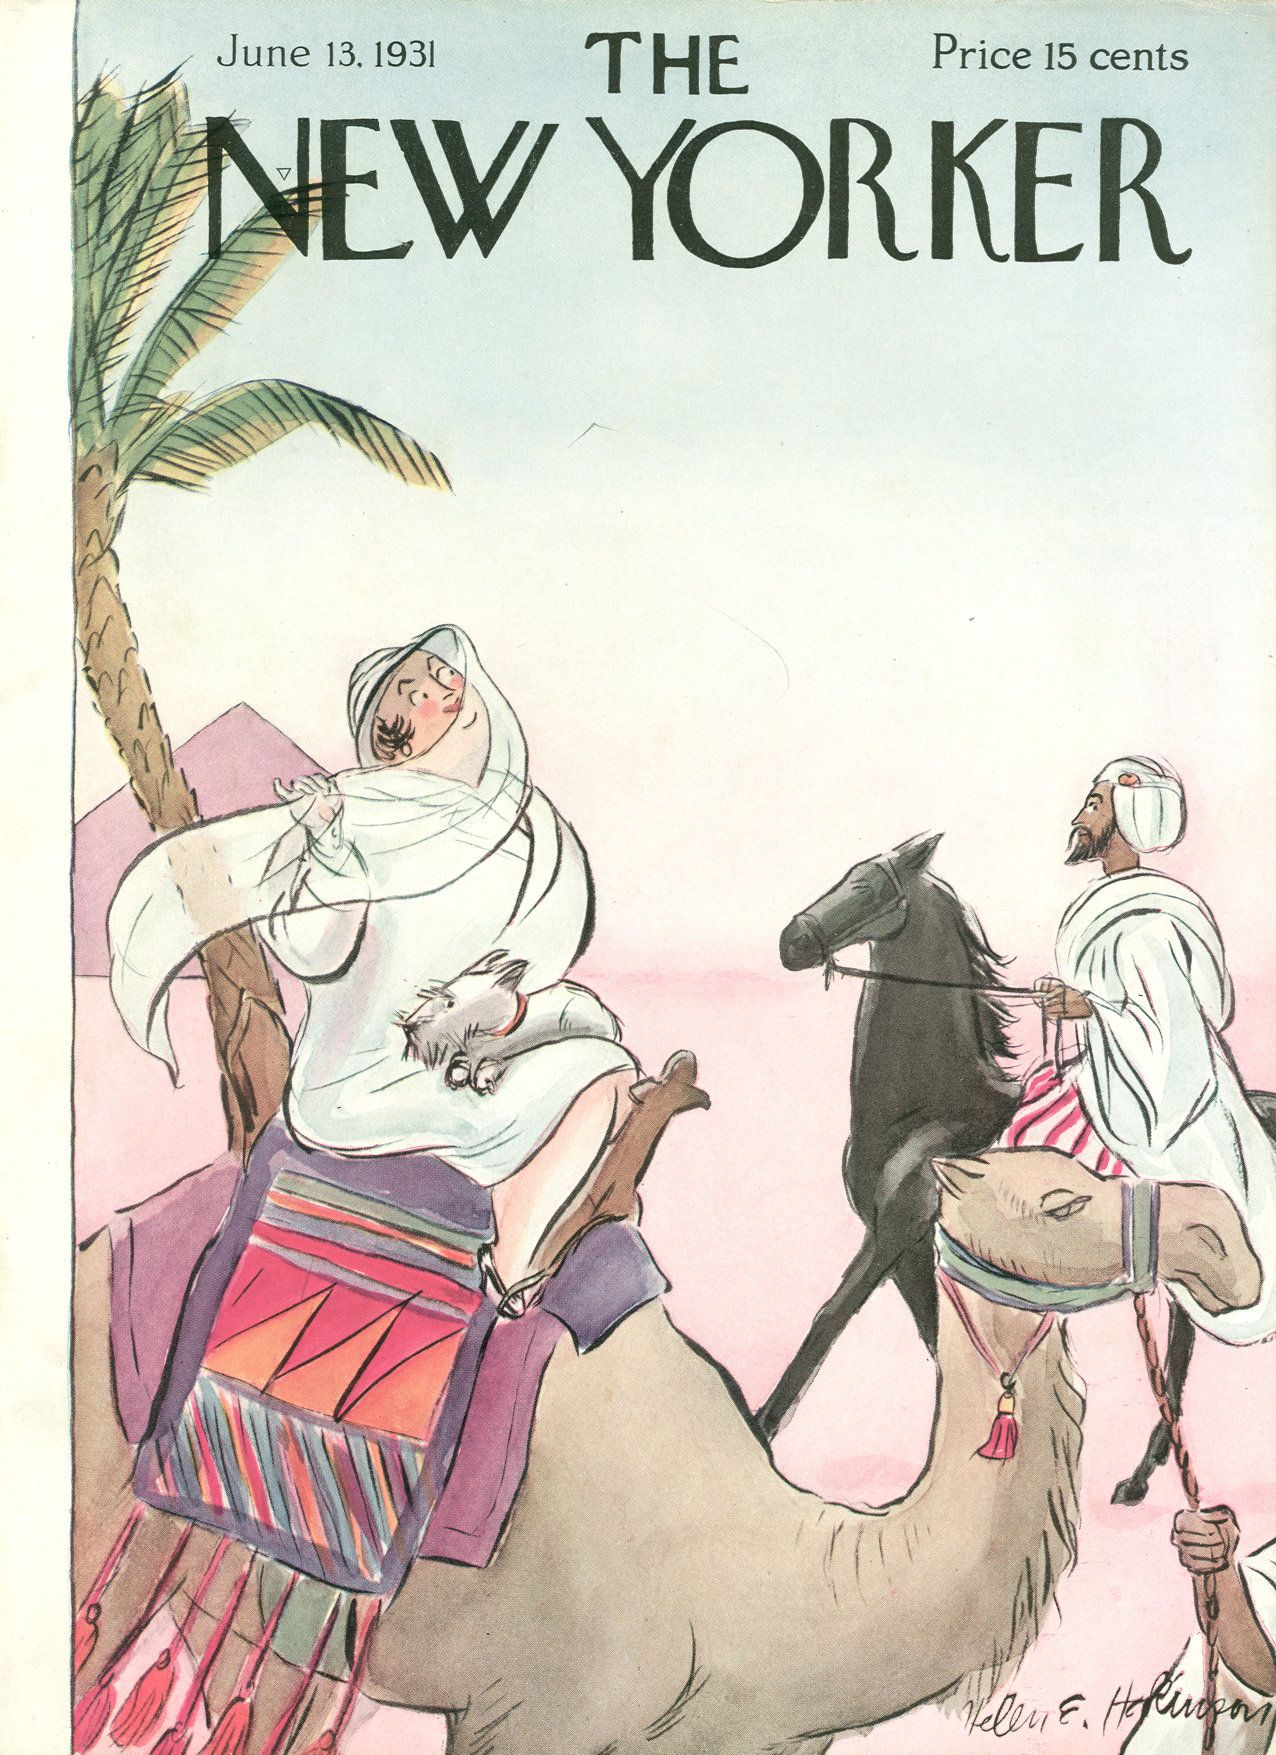 The New Yorker - Saturday, June 13, 1931 - Issue # 330 - Vol. 7 - N° 17 - Cover by : Helen E. Hokinson